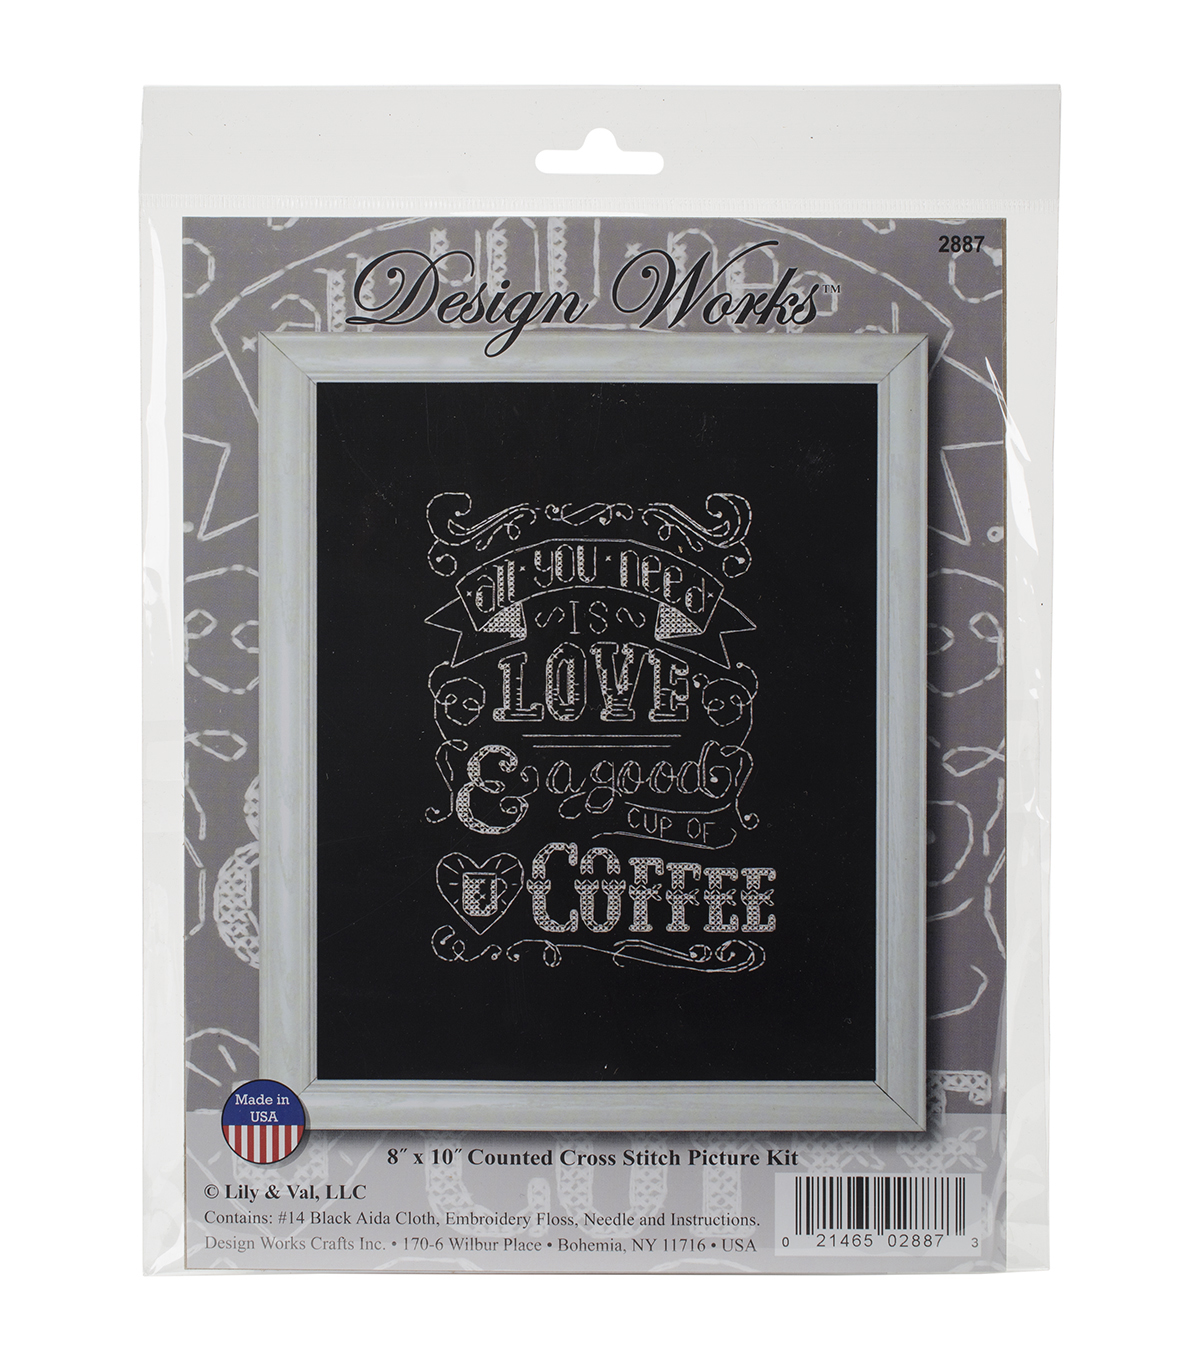 Design Works All You Need Is Love Counted Cross Stitch Kit